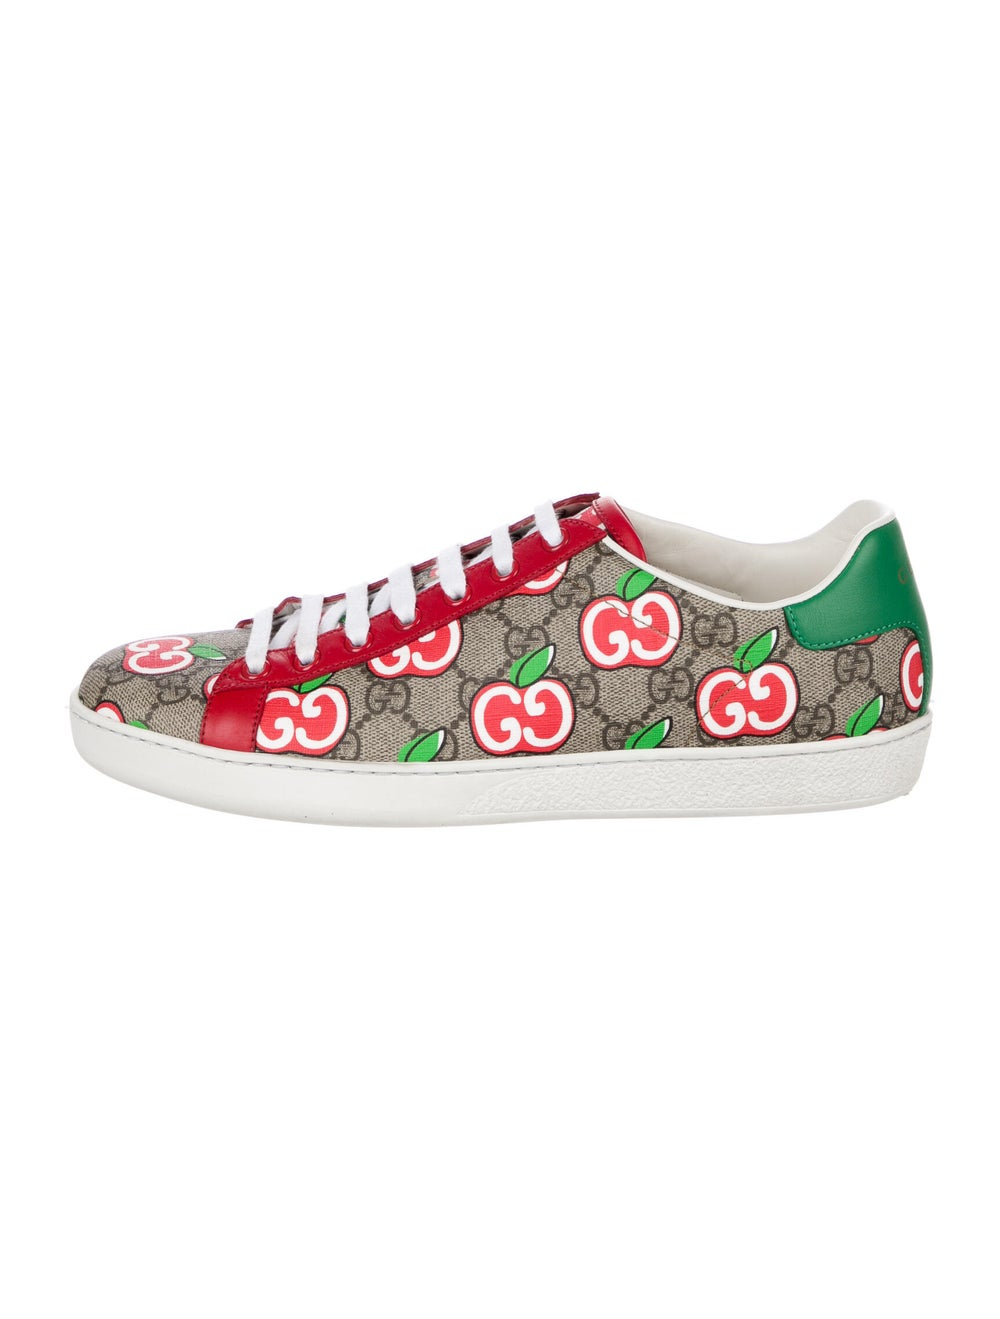 Gucci GG Apple Sneakers Sneakers - image 1